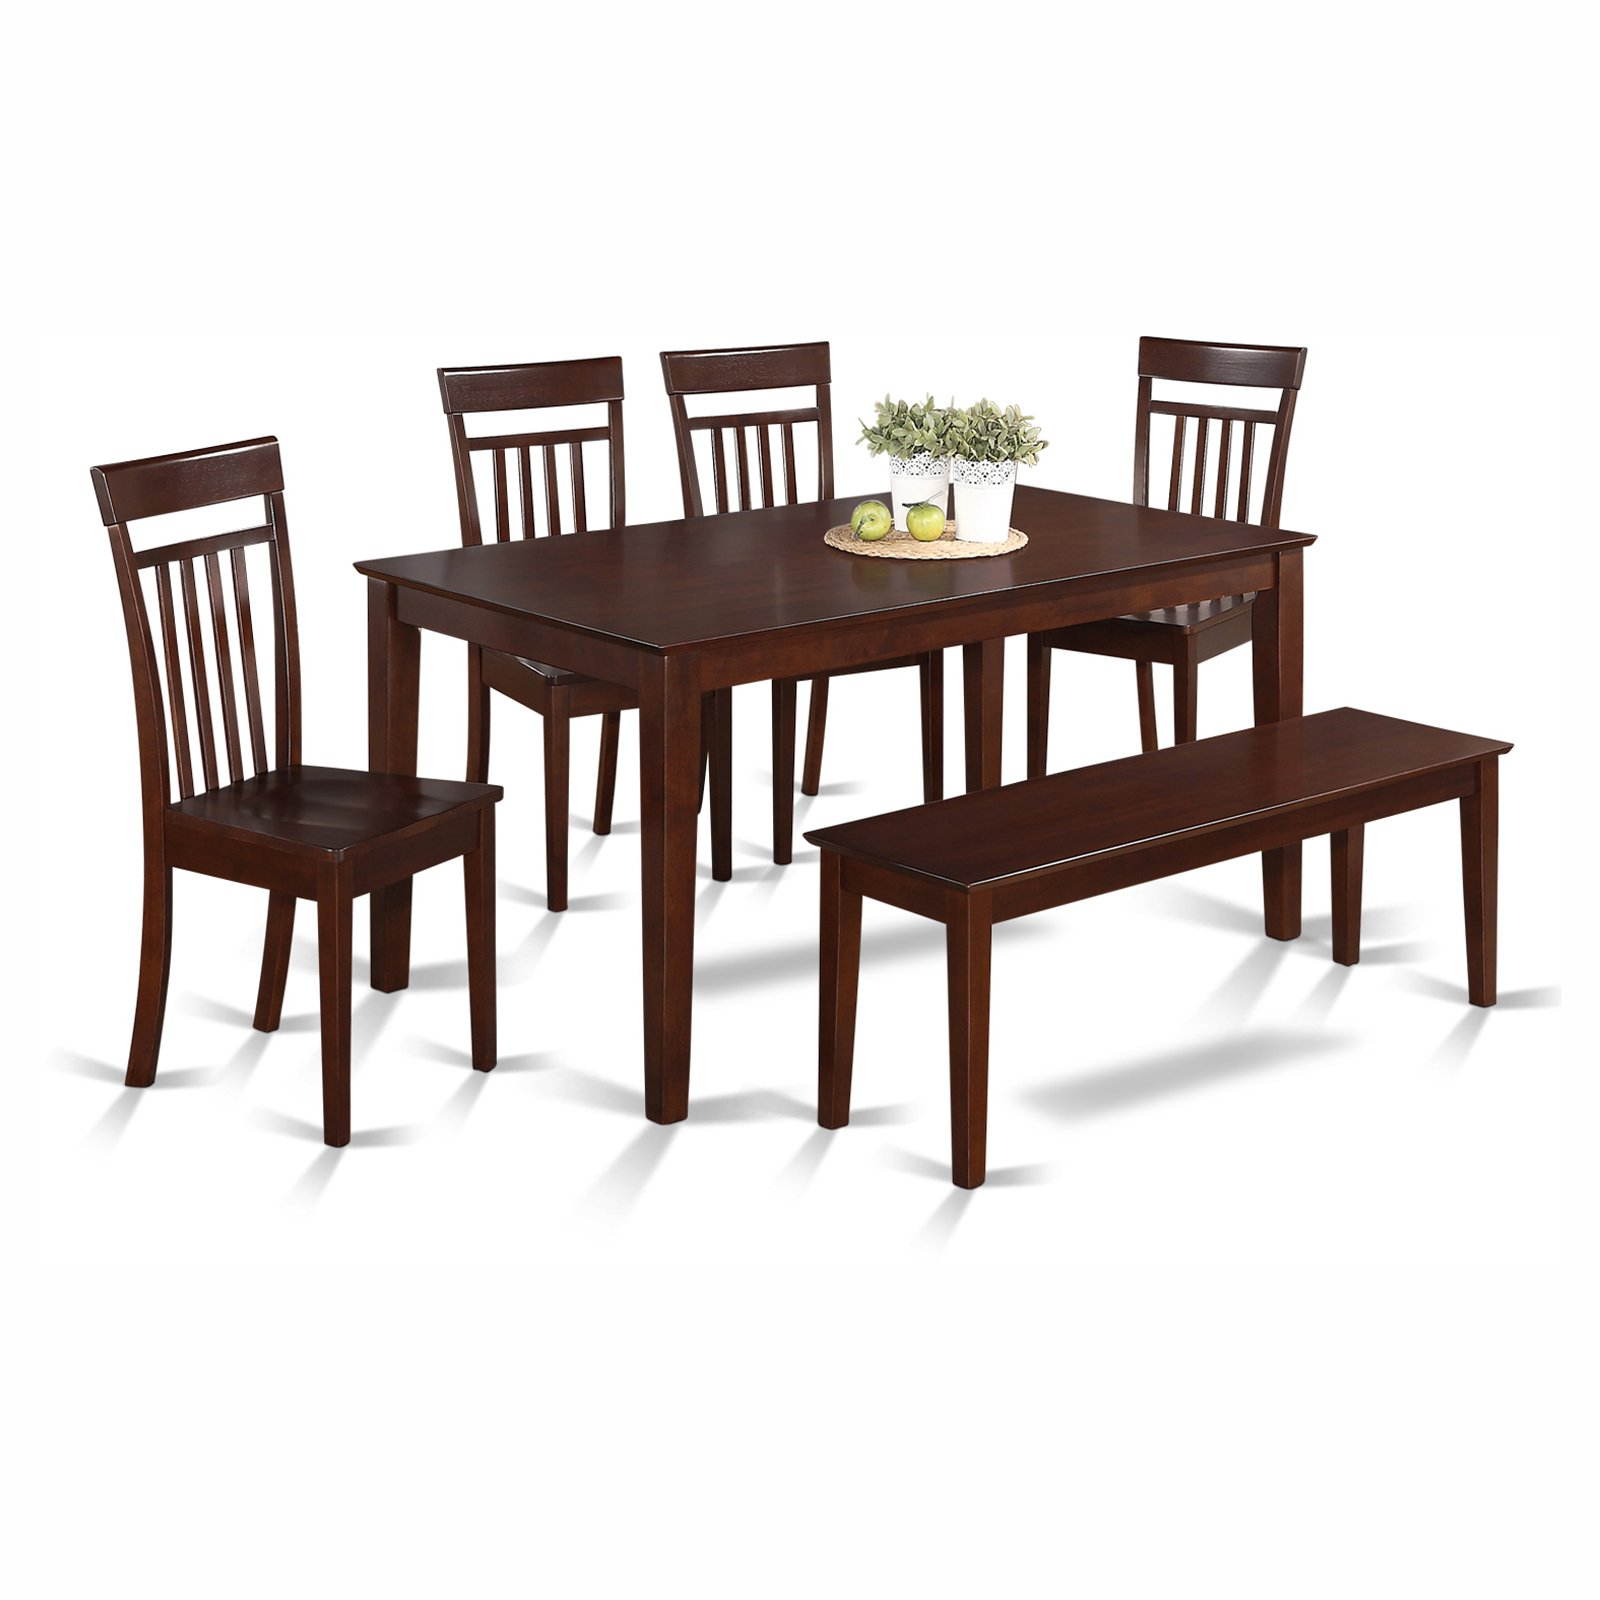 East West Furniture Capri 6 Piece Rectangular Dining Table Set with Wooden Seat Chairs